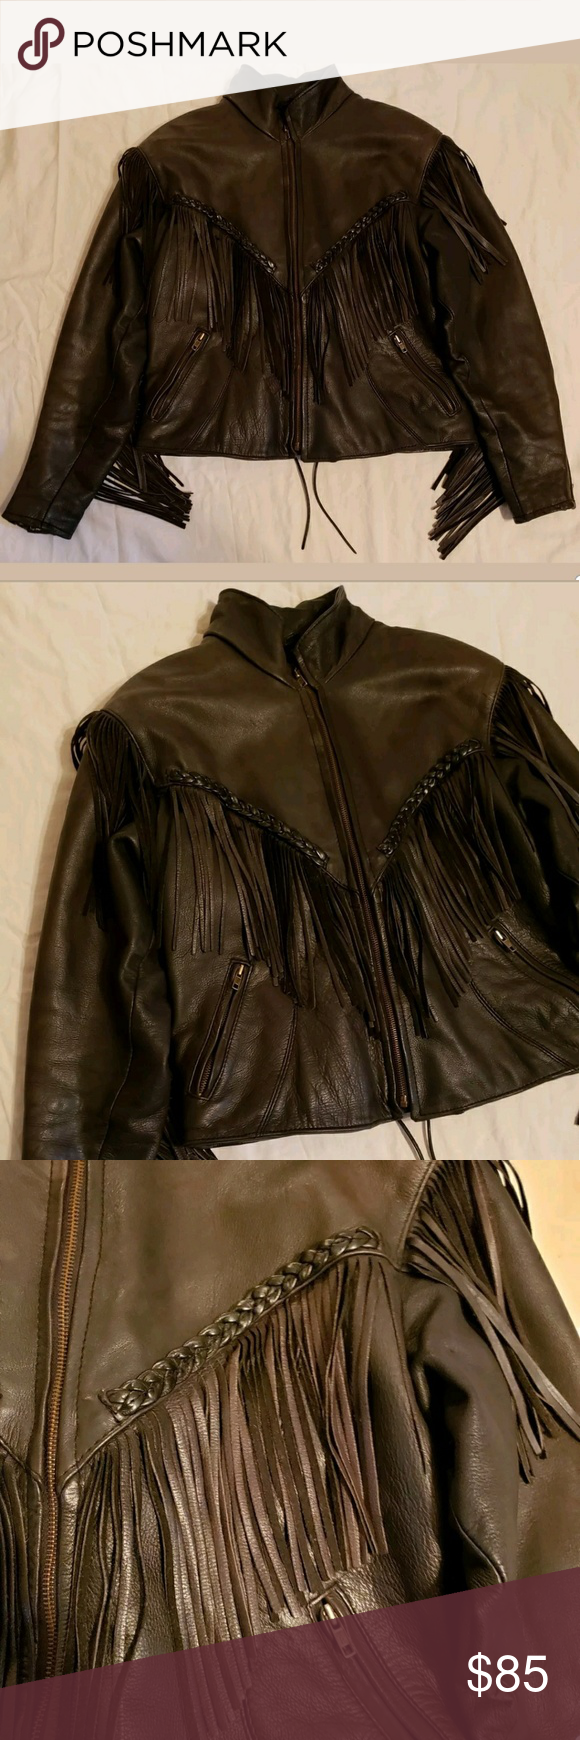 8ed2c2be4c0f Hot Leathers Fringe Leather Jacket Women Size 12 Leather Motorcycle Jacket.  Removeble Liner. Dark Brown. It has one light faded spot on the front upper  area ...